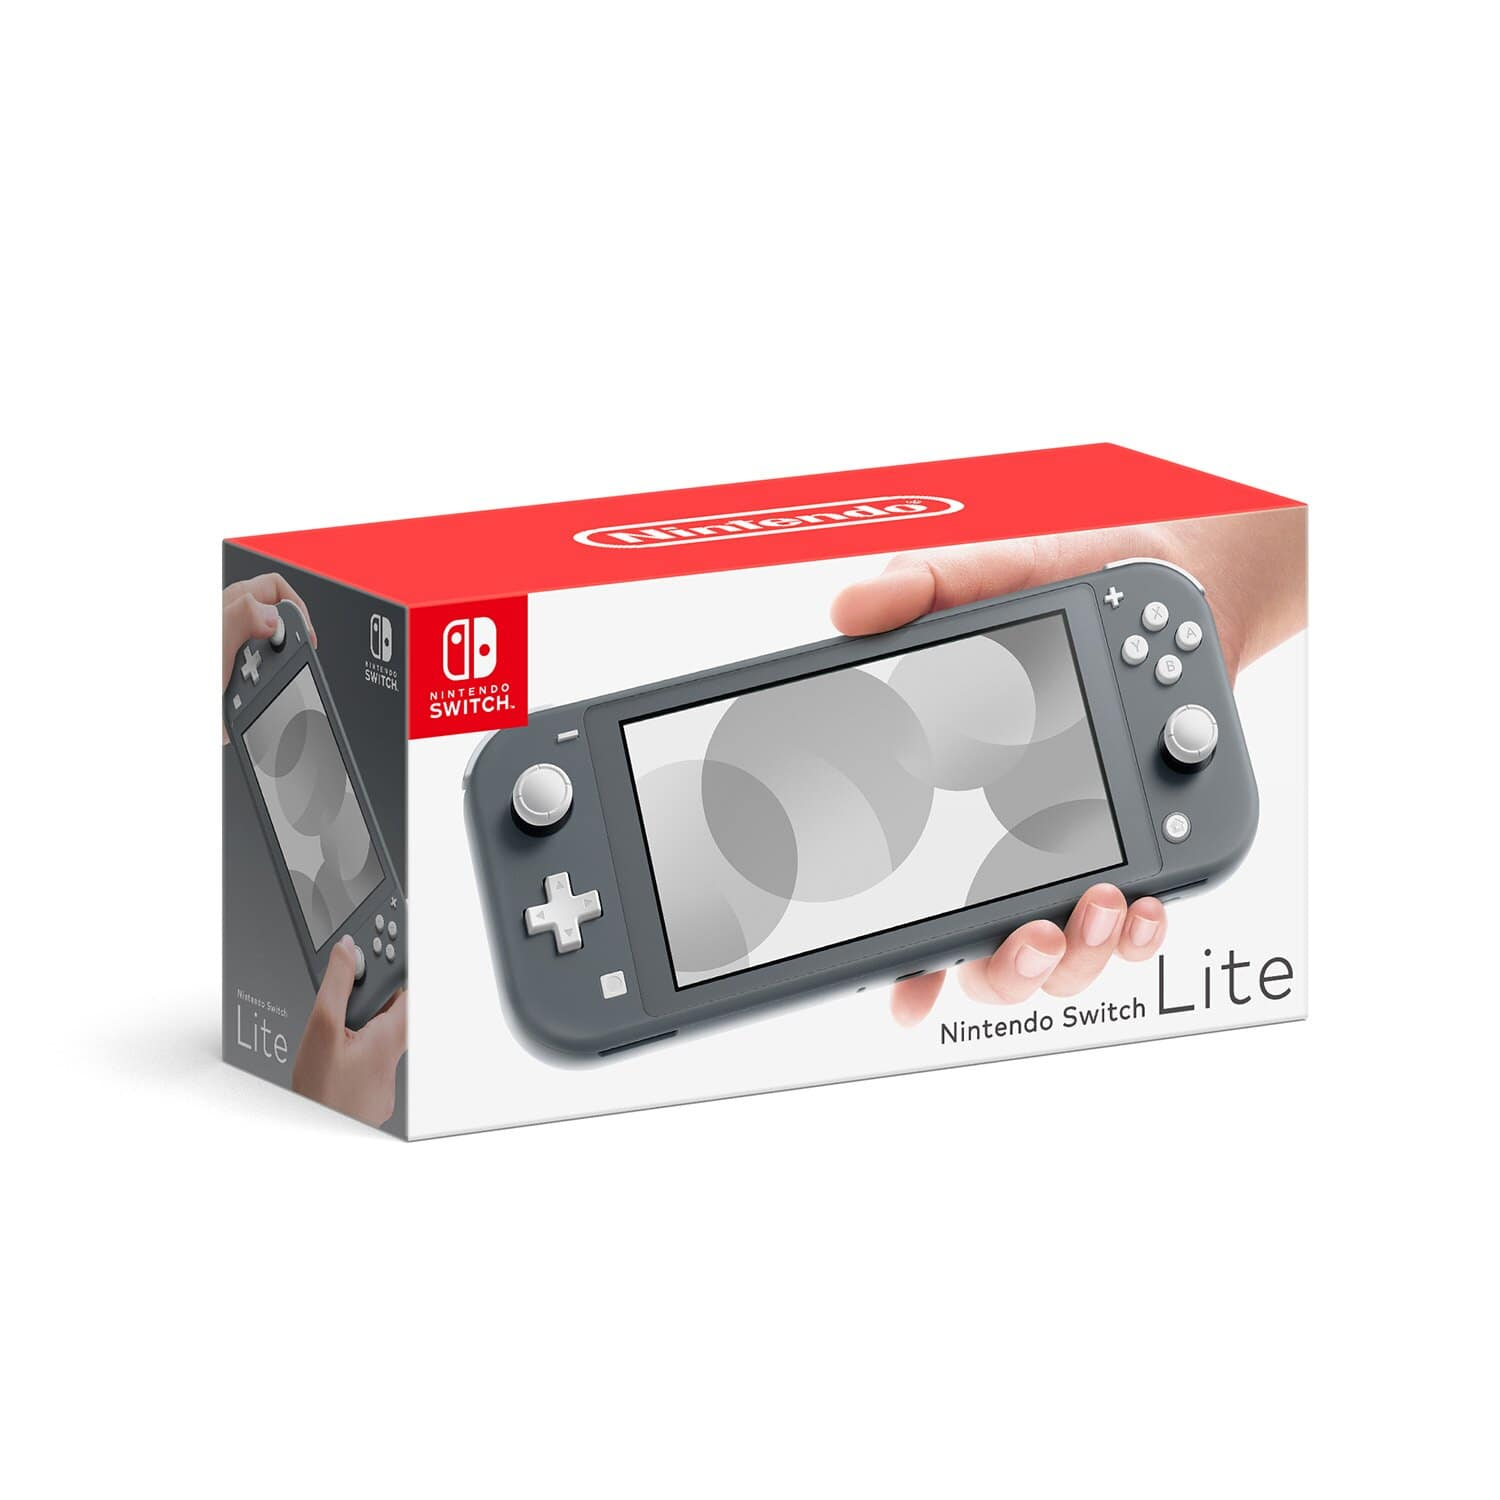 32GB Nintendo Switch Lite Console (Grey, Turquoise or Yellow) $169.99 + Free Shipping